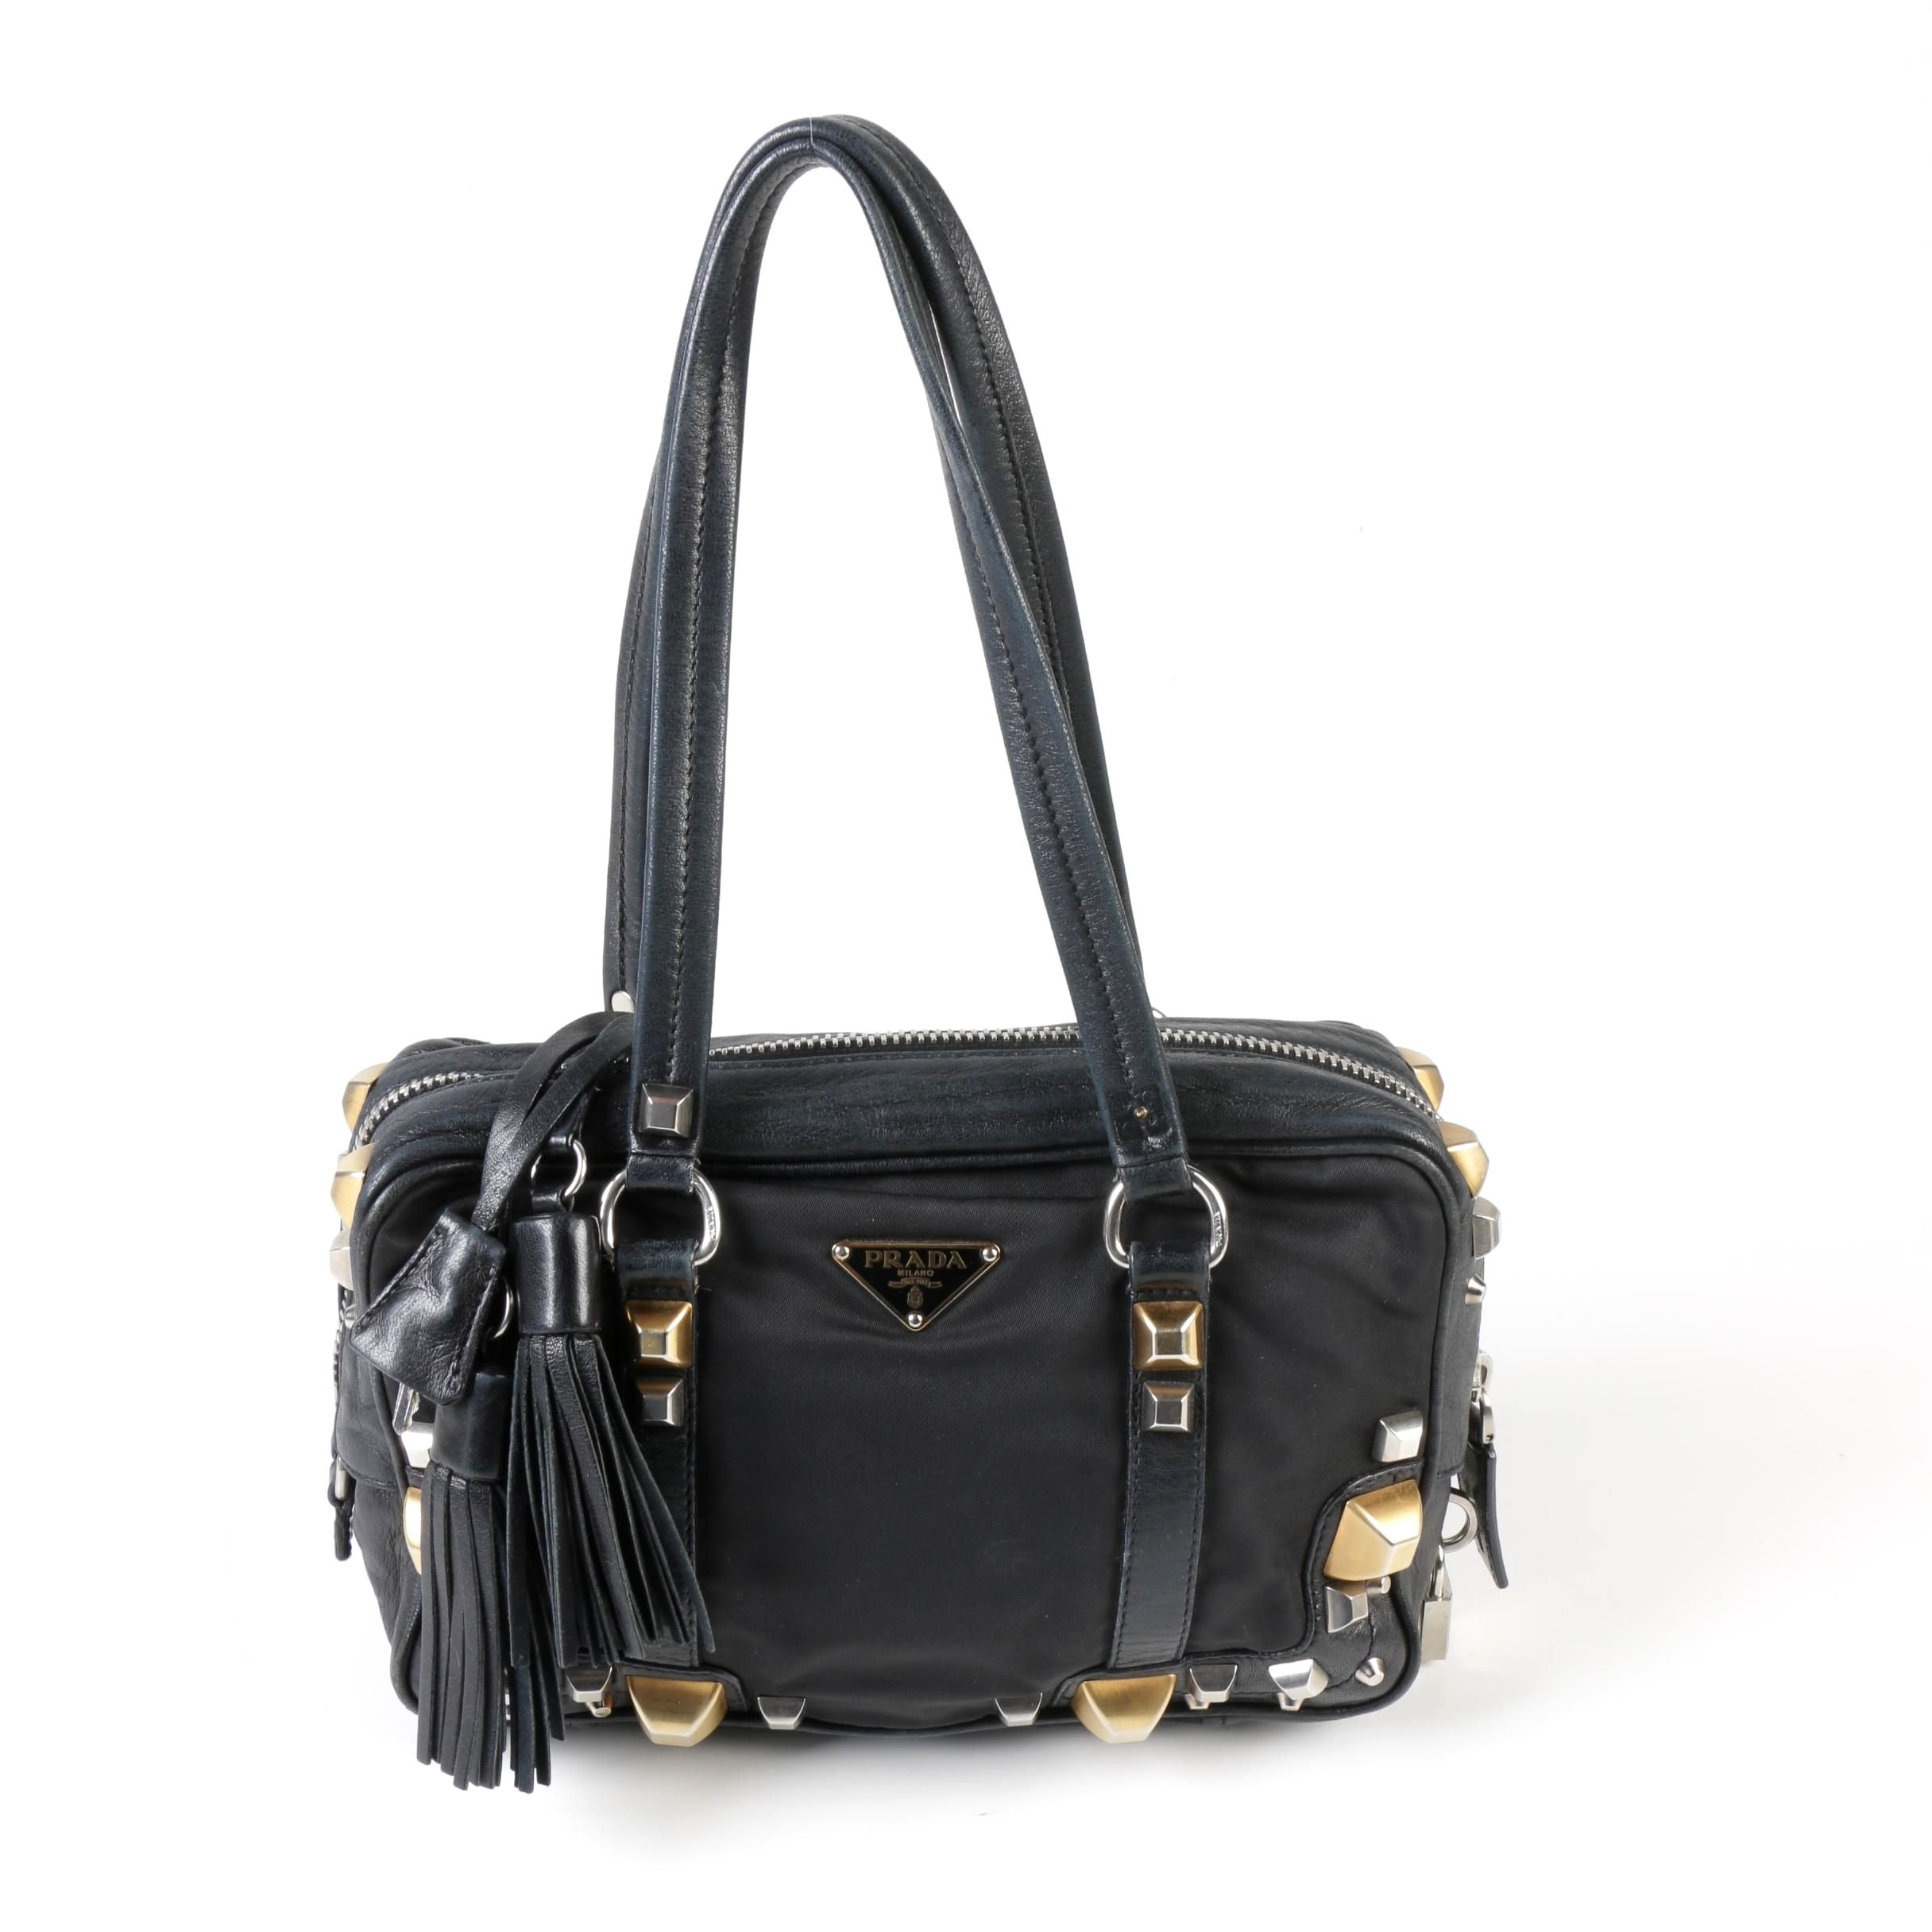 Prada Black Nylon and Leather Pyramid Studded Shoulder Bag with Tassels